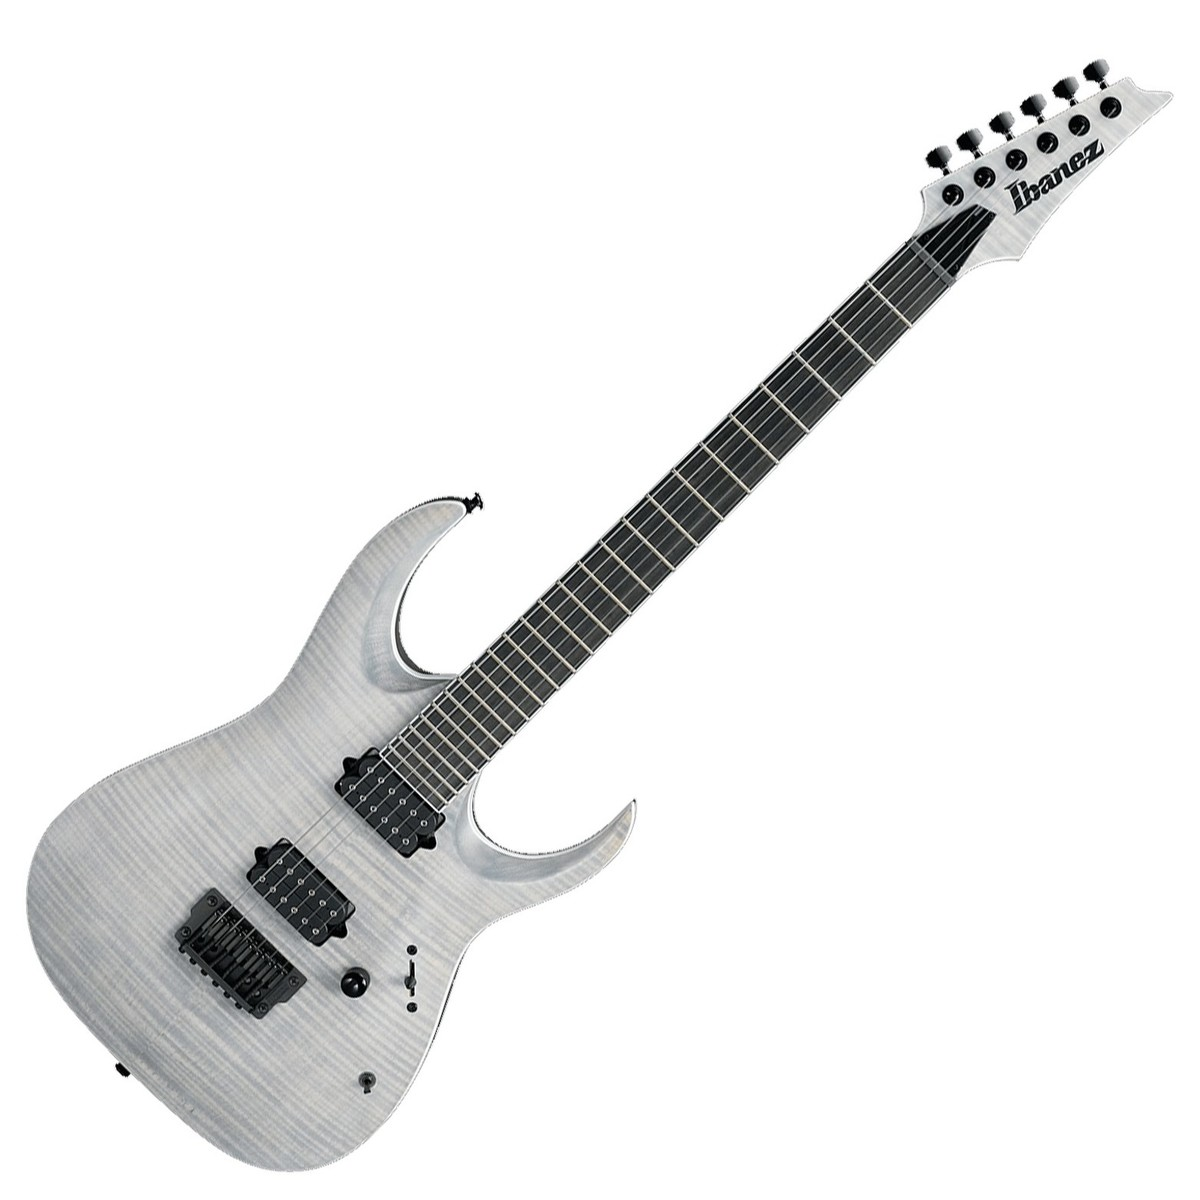 Ibanez Rgaix6fm Iron Label White Frost Flat At Gear4music